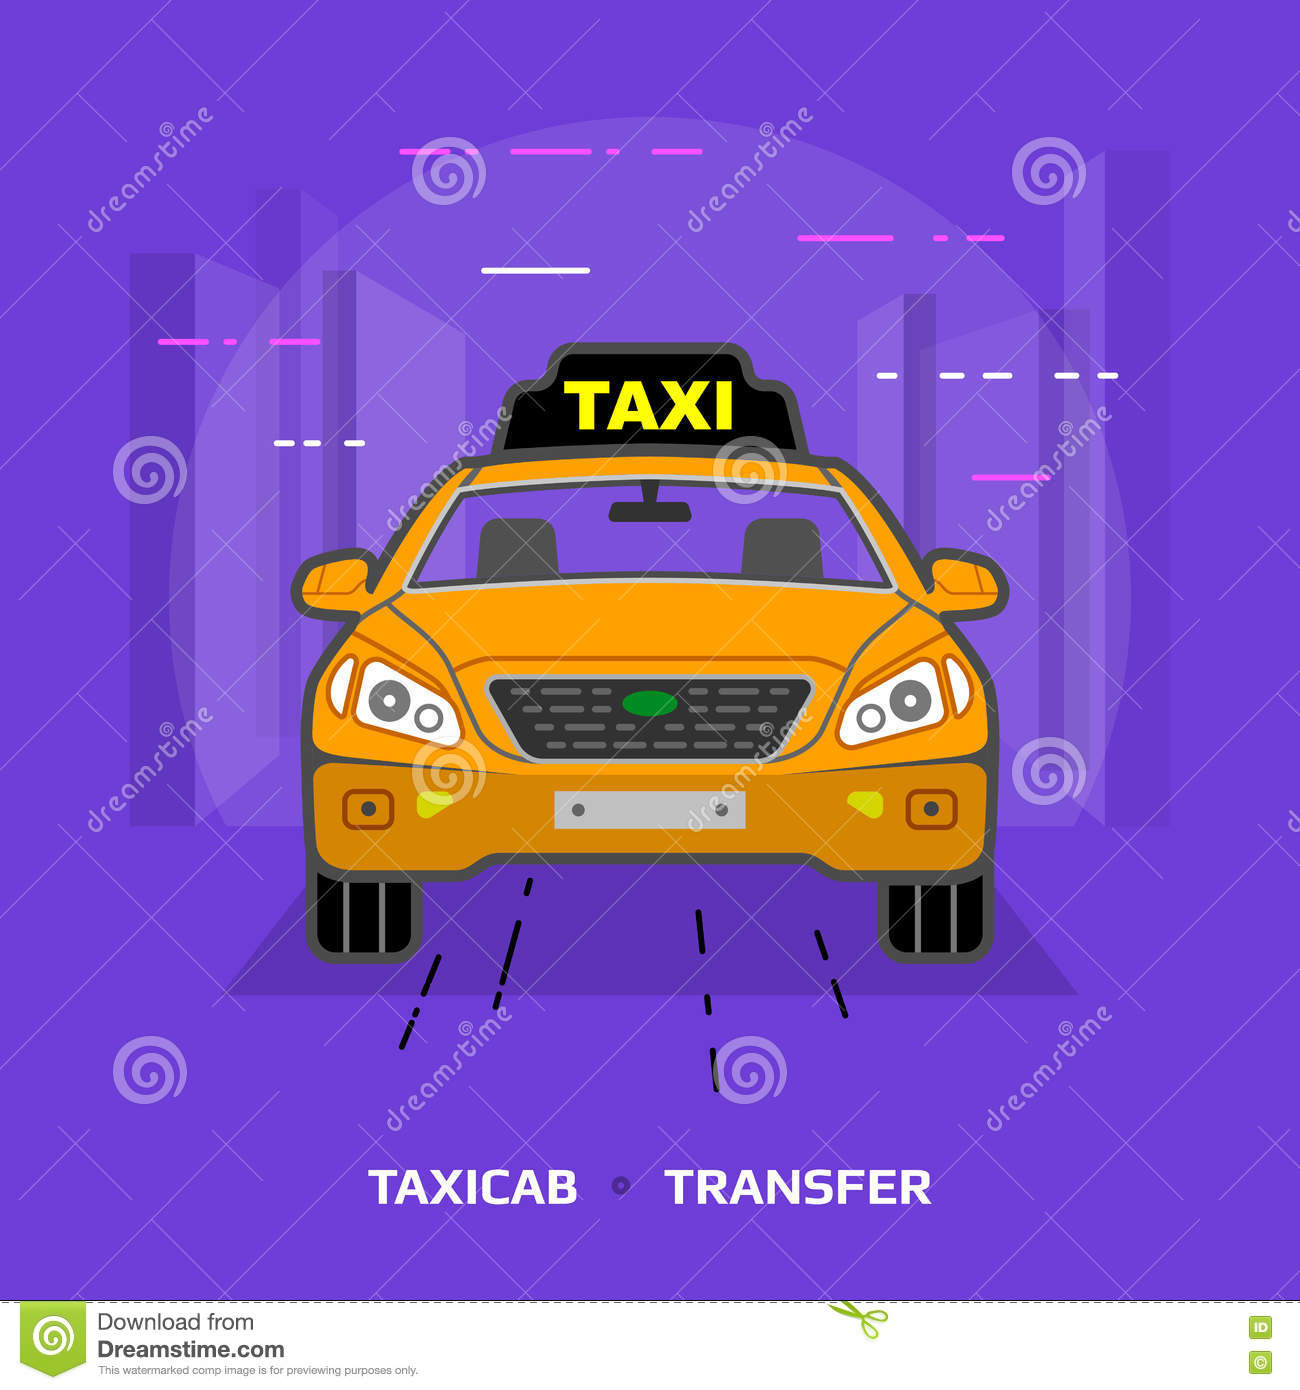 taxicab cartoons illustrations vector stock images 225 pictures to download from. Black Bedroom Furniture Sets. Home Design Ideas